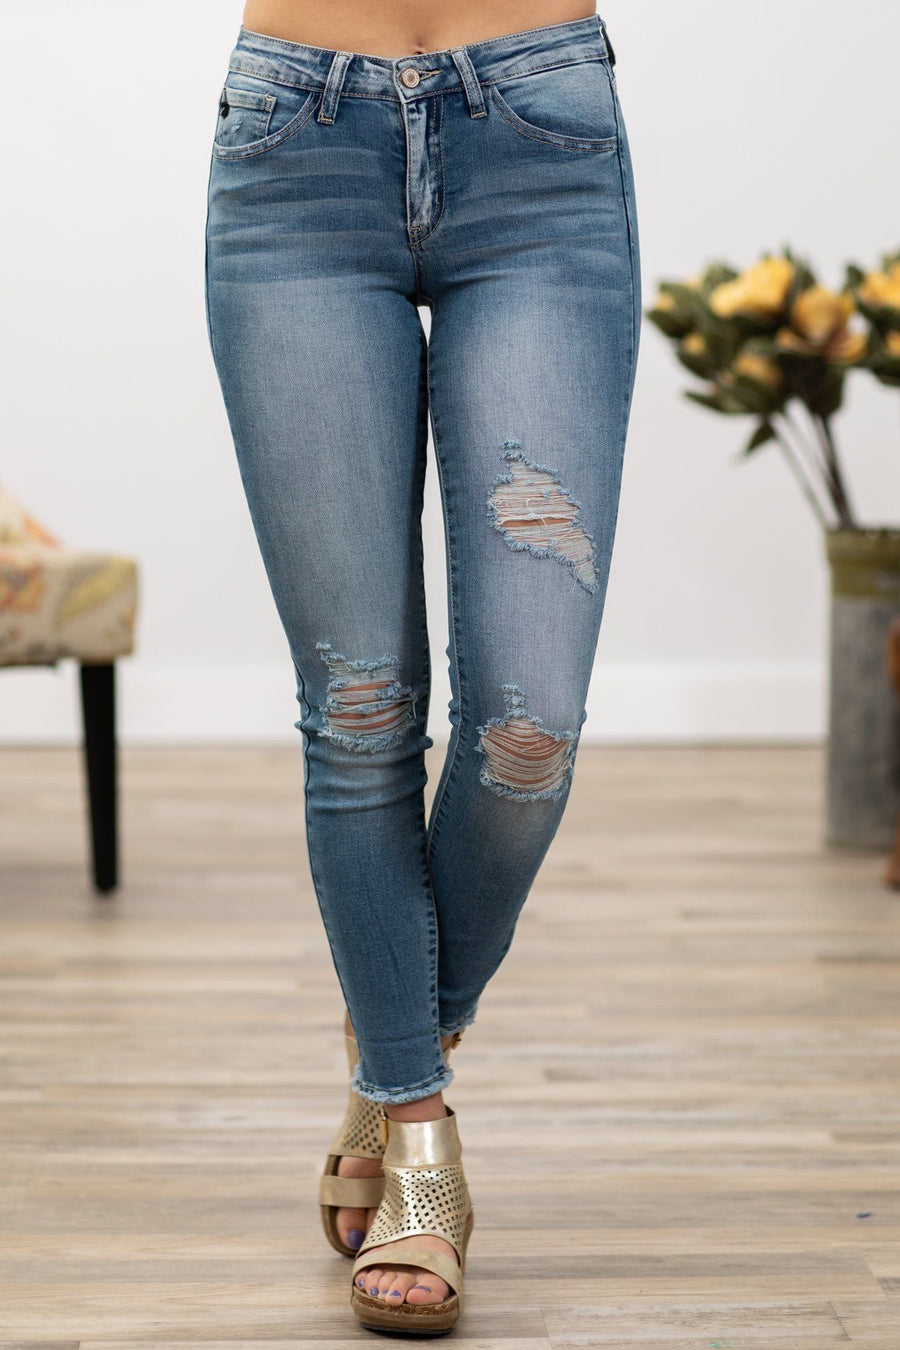 ad02effd4885b Jeans and more - Distressed, Washed and Boot Cut - Filly Flair